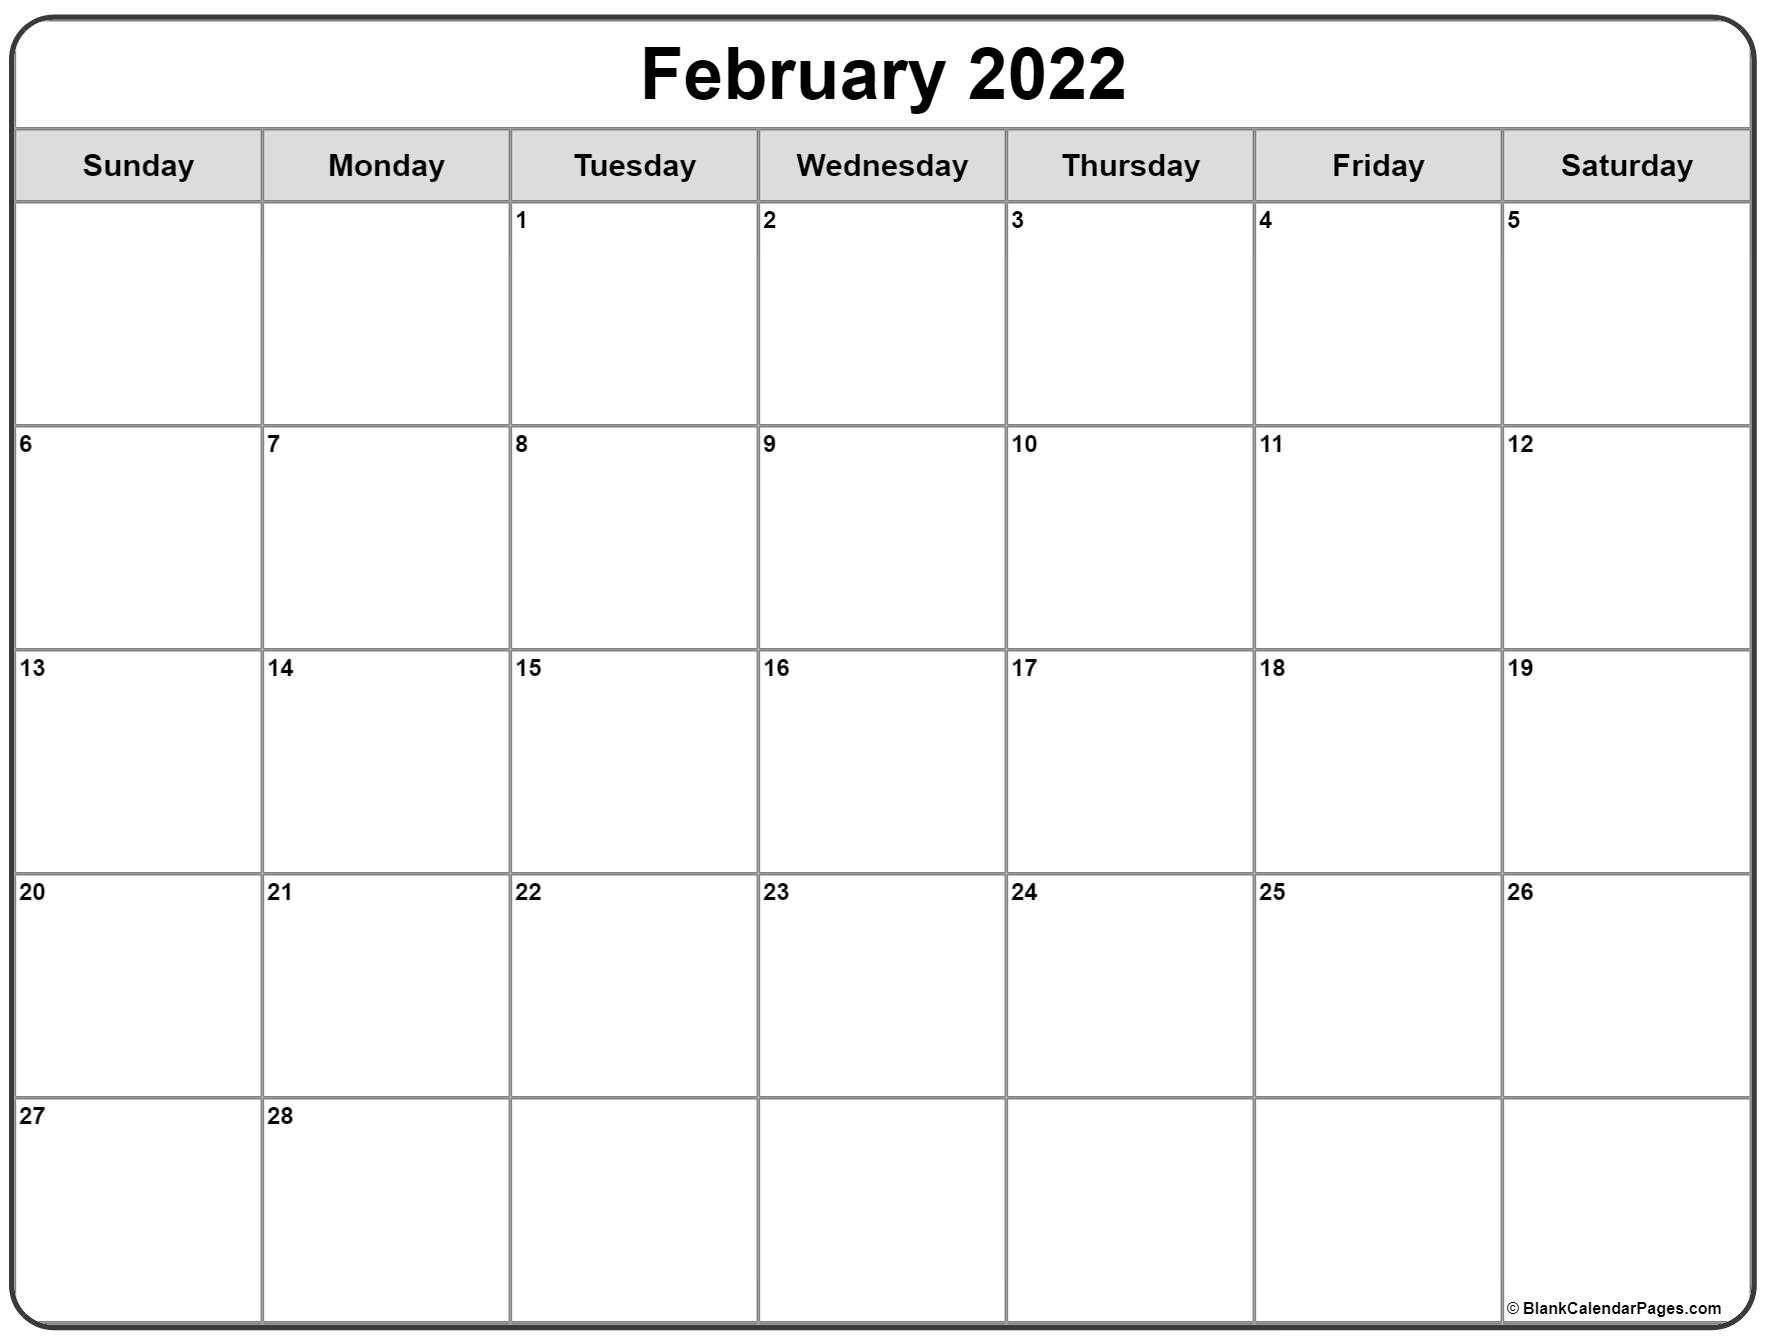 February 2022 calendar | free printable monthly calendars